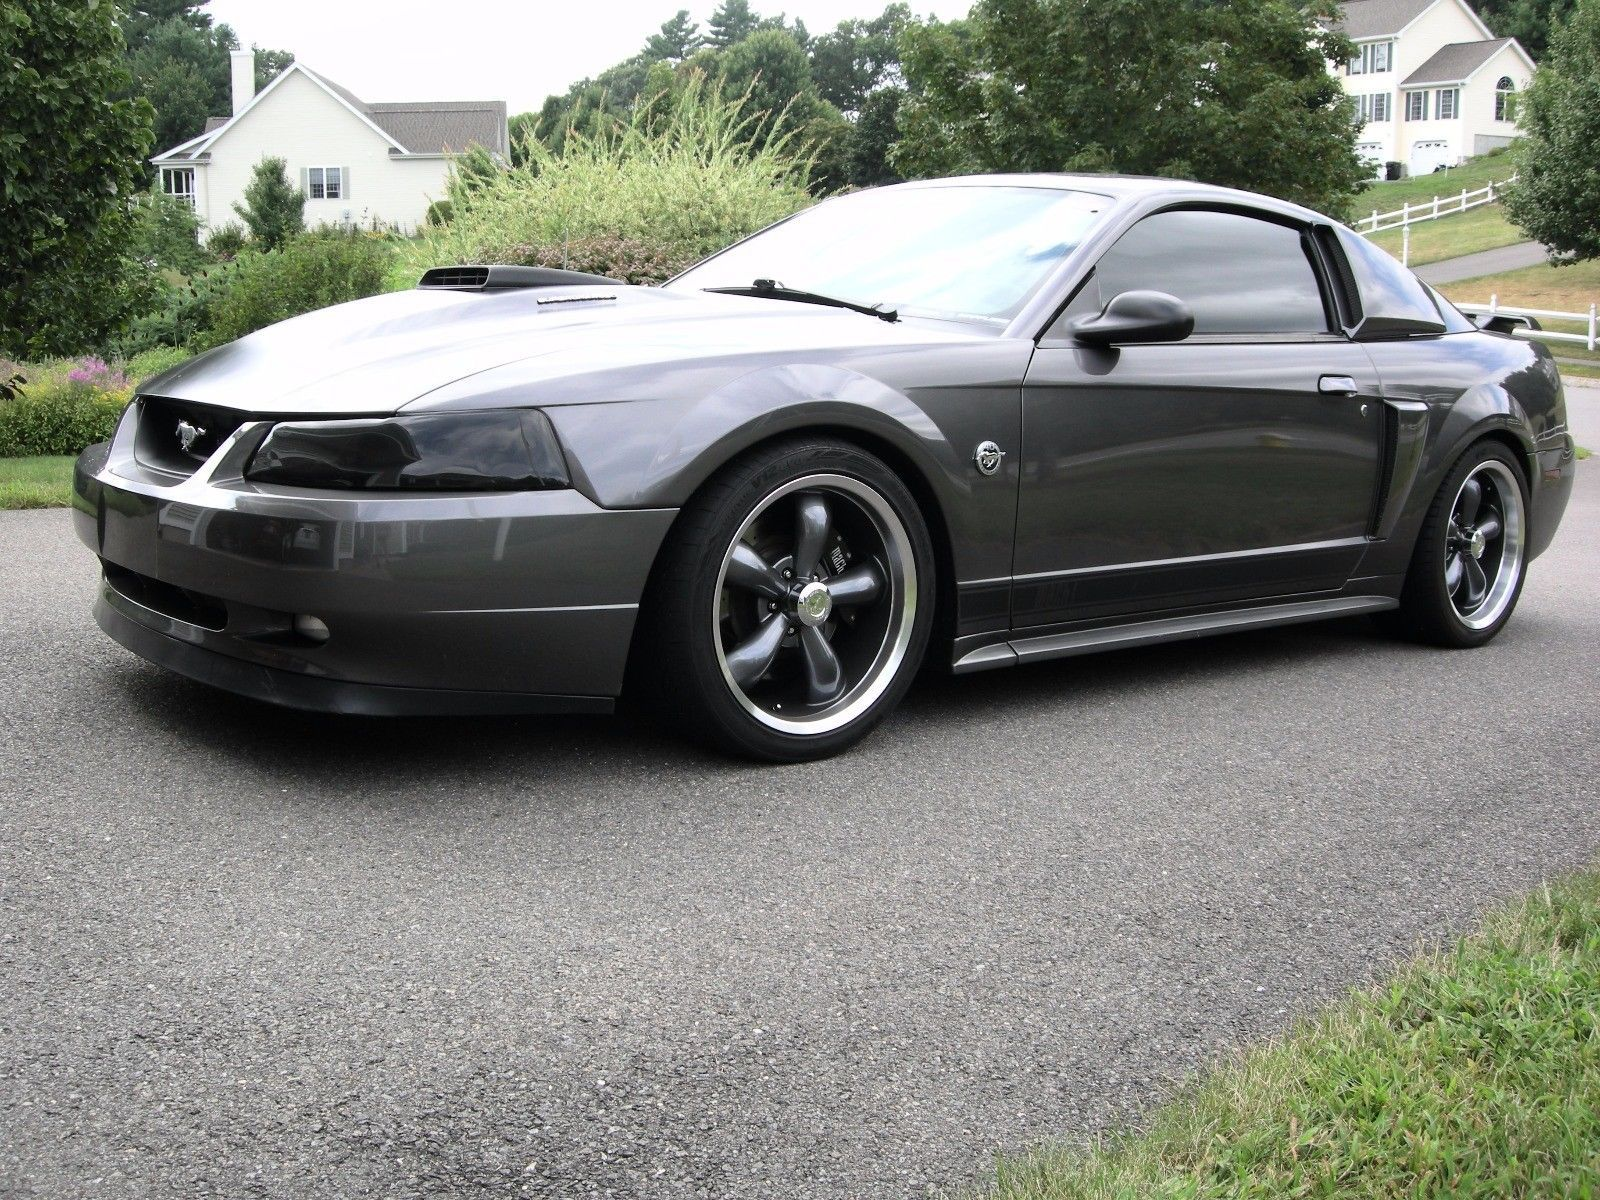 Awesome Awesome 2004 Ford Mustang Mach 1 2004 Mach 1 Show That Goes 2017 2018 Check More At Http 24auto Cf 2017 2004 Ford Mustang Ford Mustang Mustang Mach 1